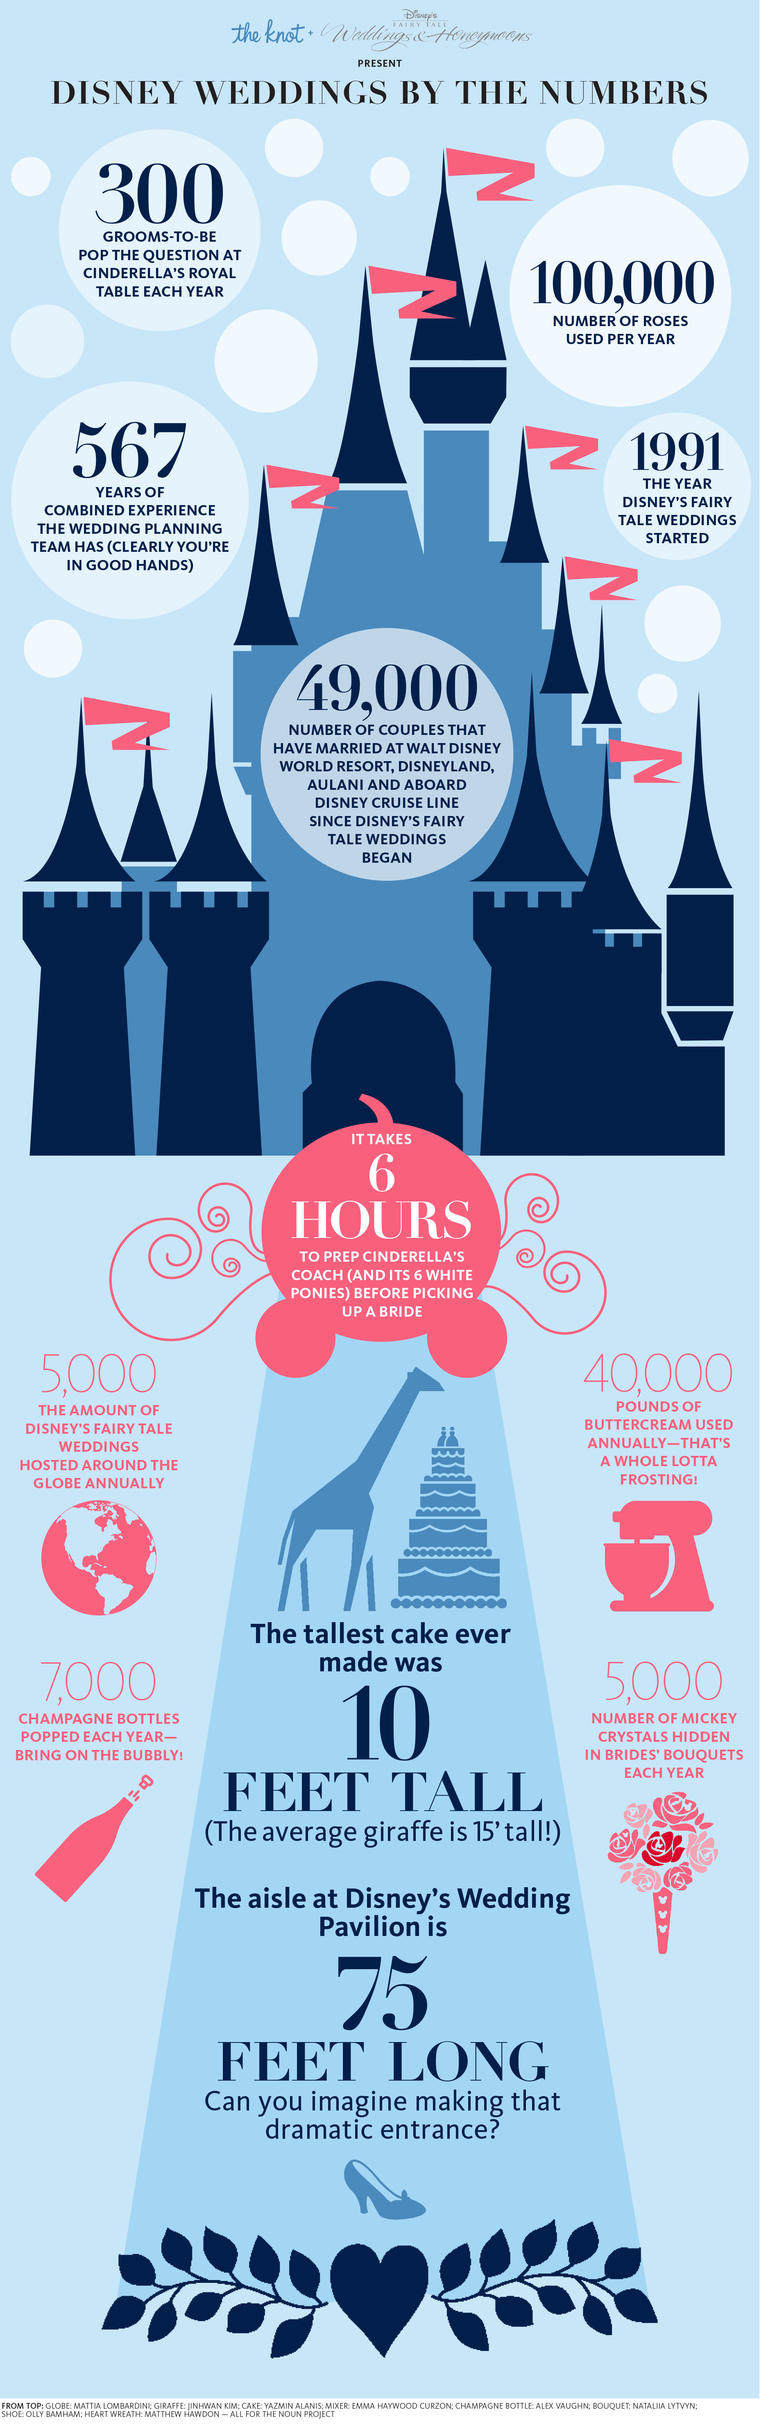 the knot disney weddings by the numbers